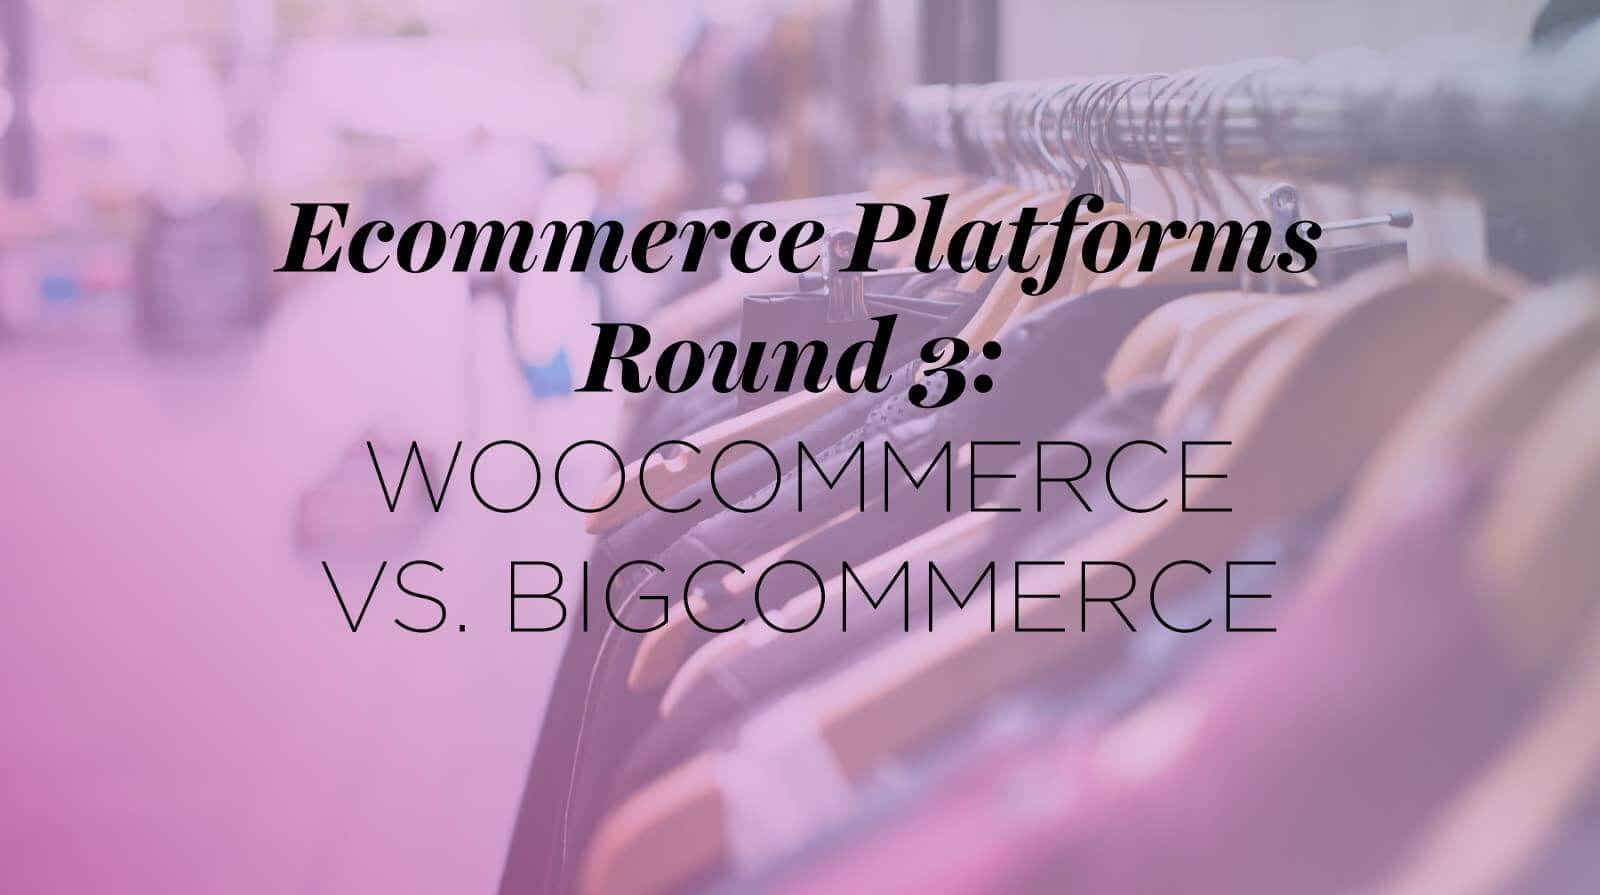 Ecommerce Platforms Round Three- WooCommerce vs. BigCommerce